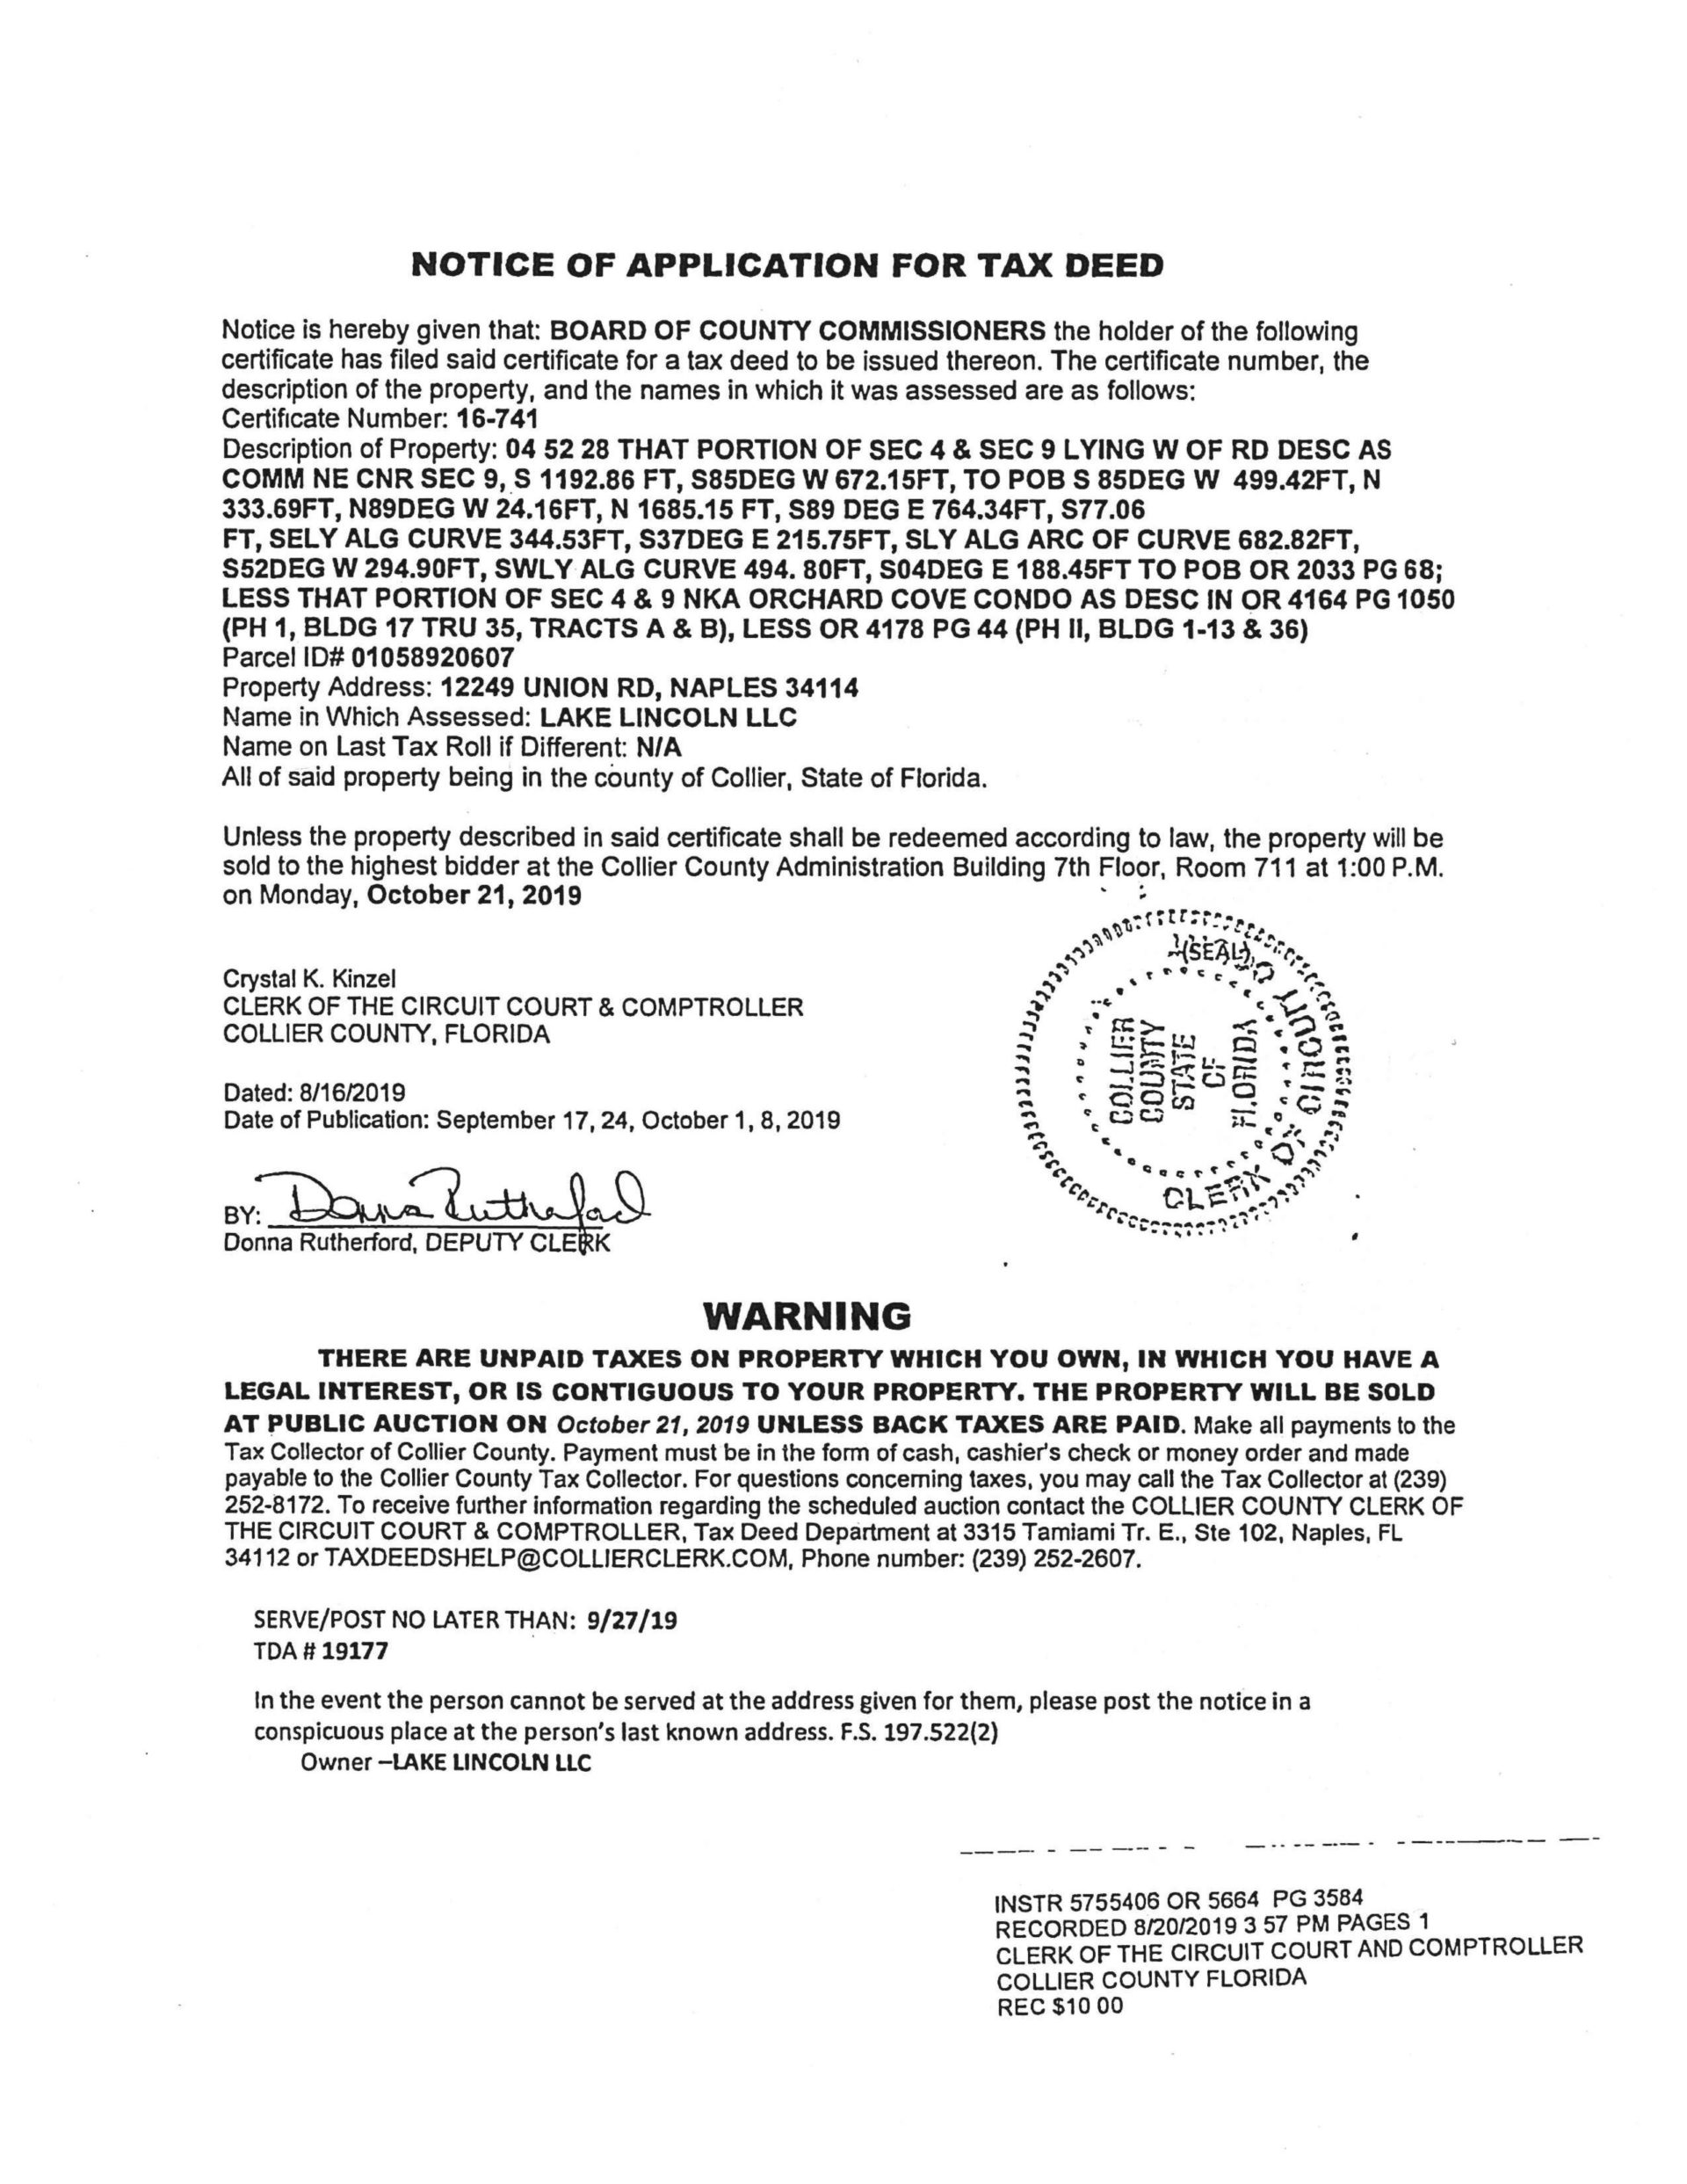 12249 Union Road Tax Deed Application page 1